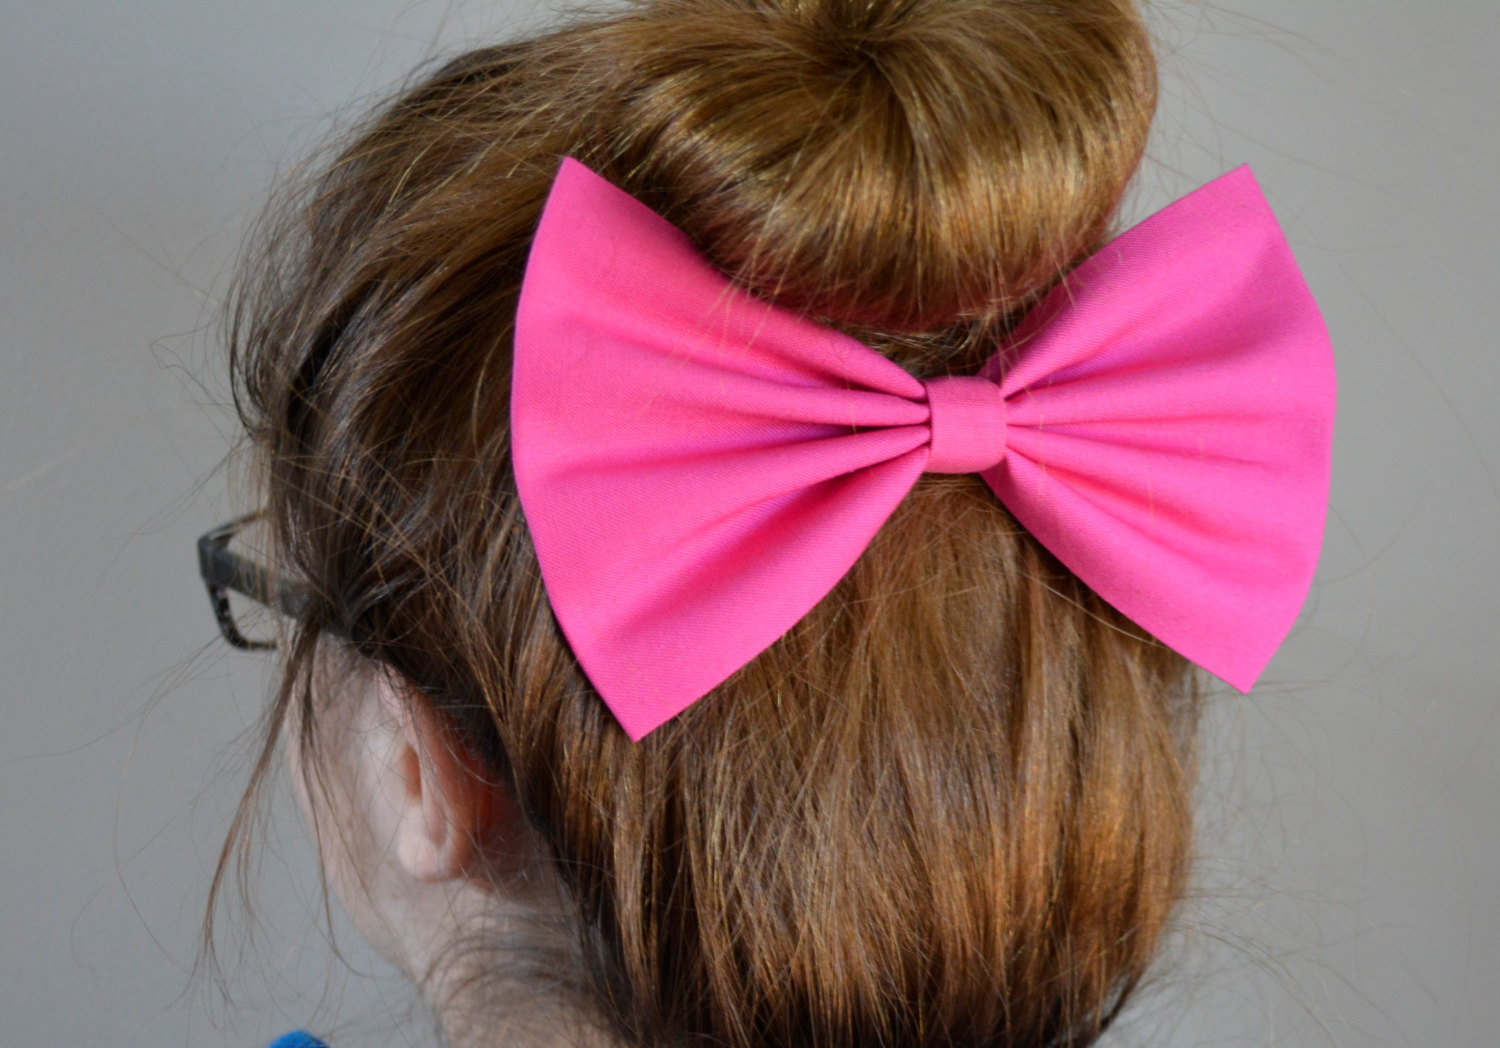 Hair Bows The Hair Bow Company has a huge selection of hair bows in classic and oversized sizes, as well as our popular cheer bows and team color bows! We .